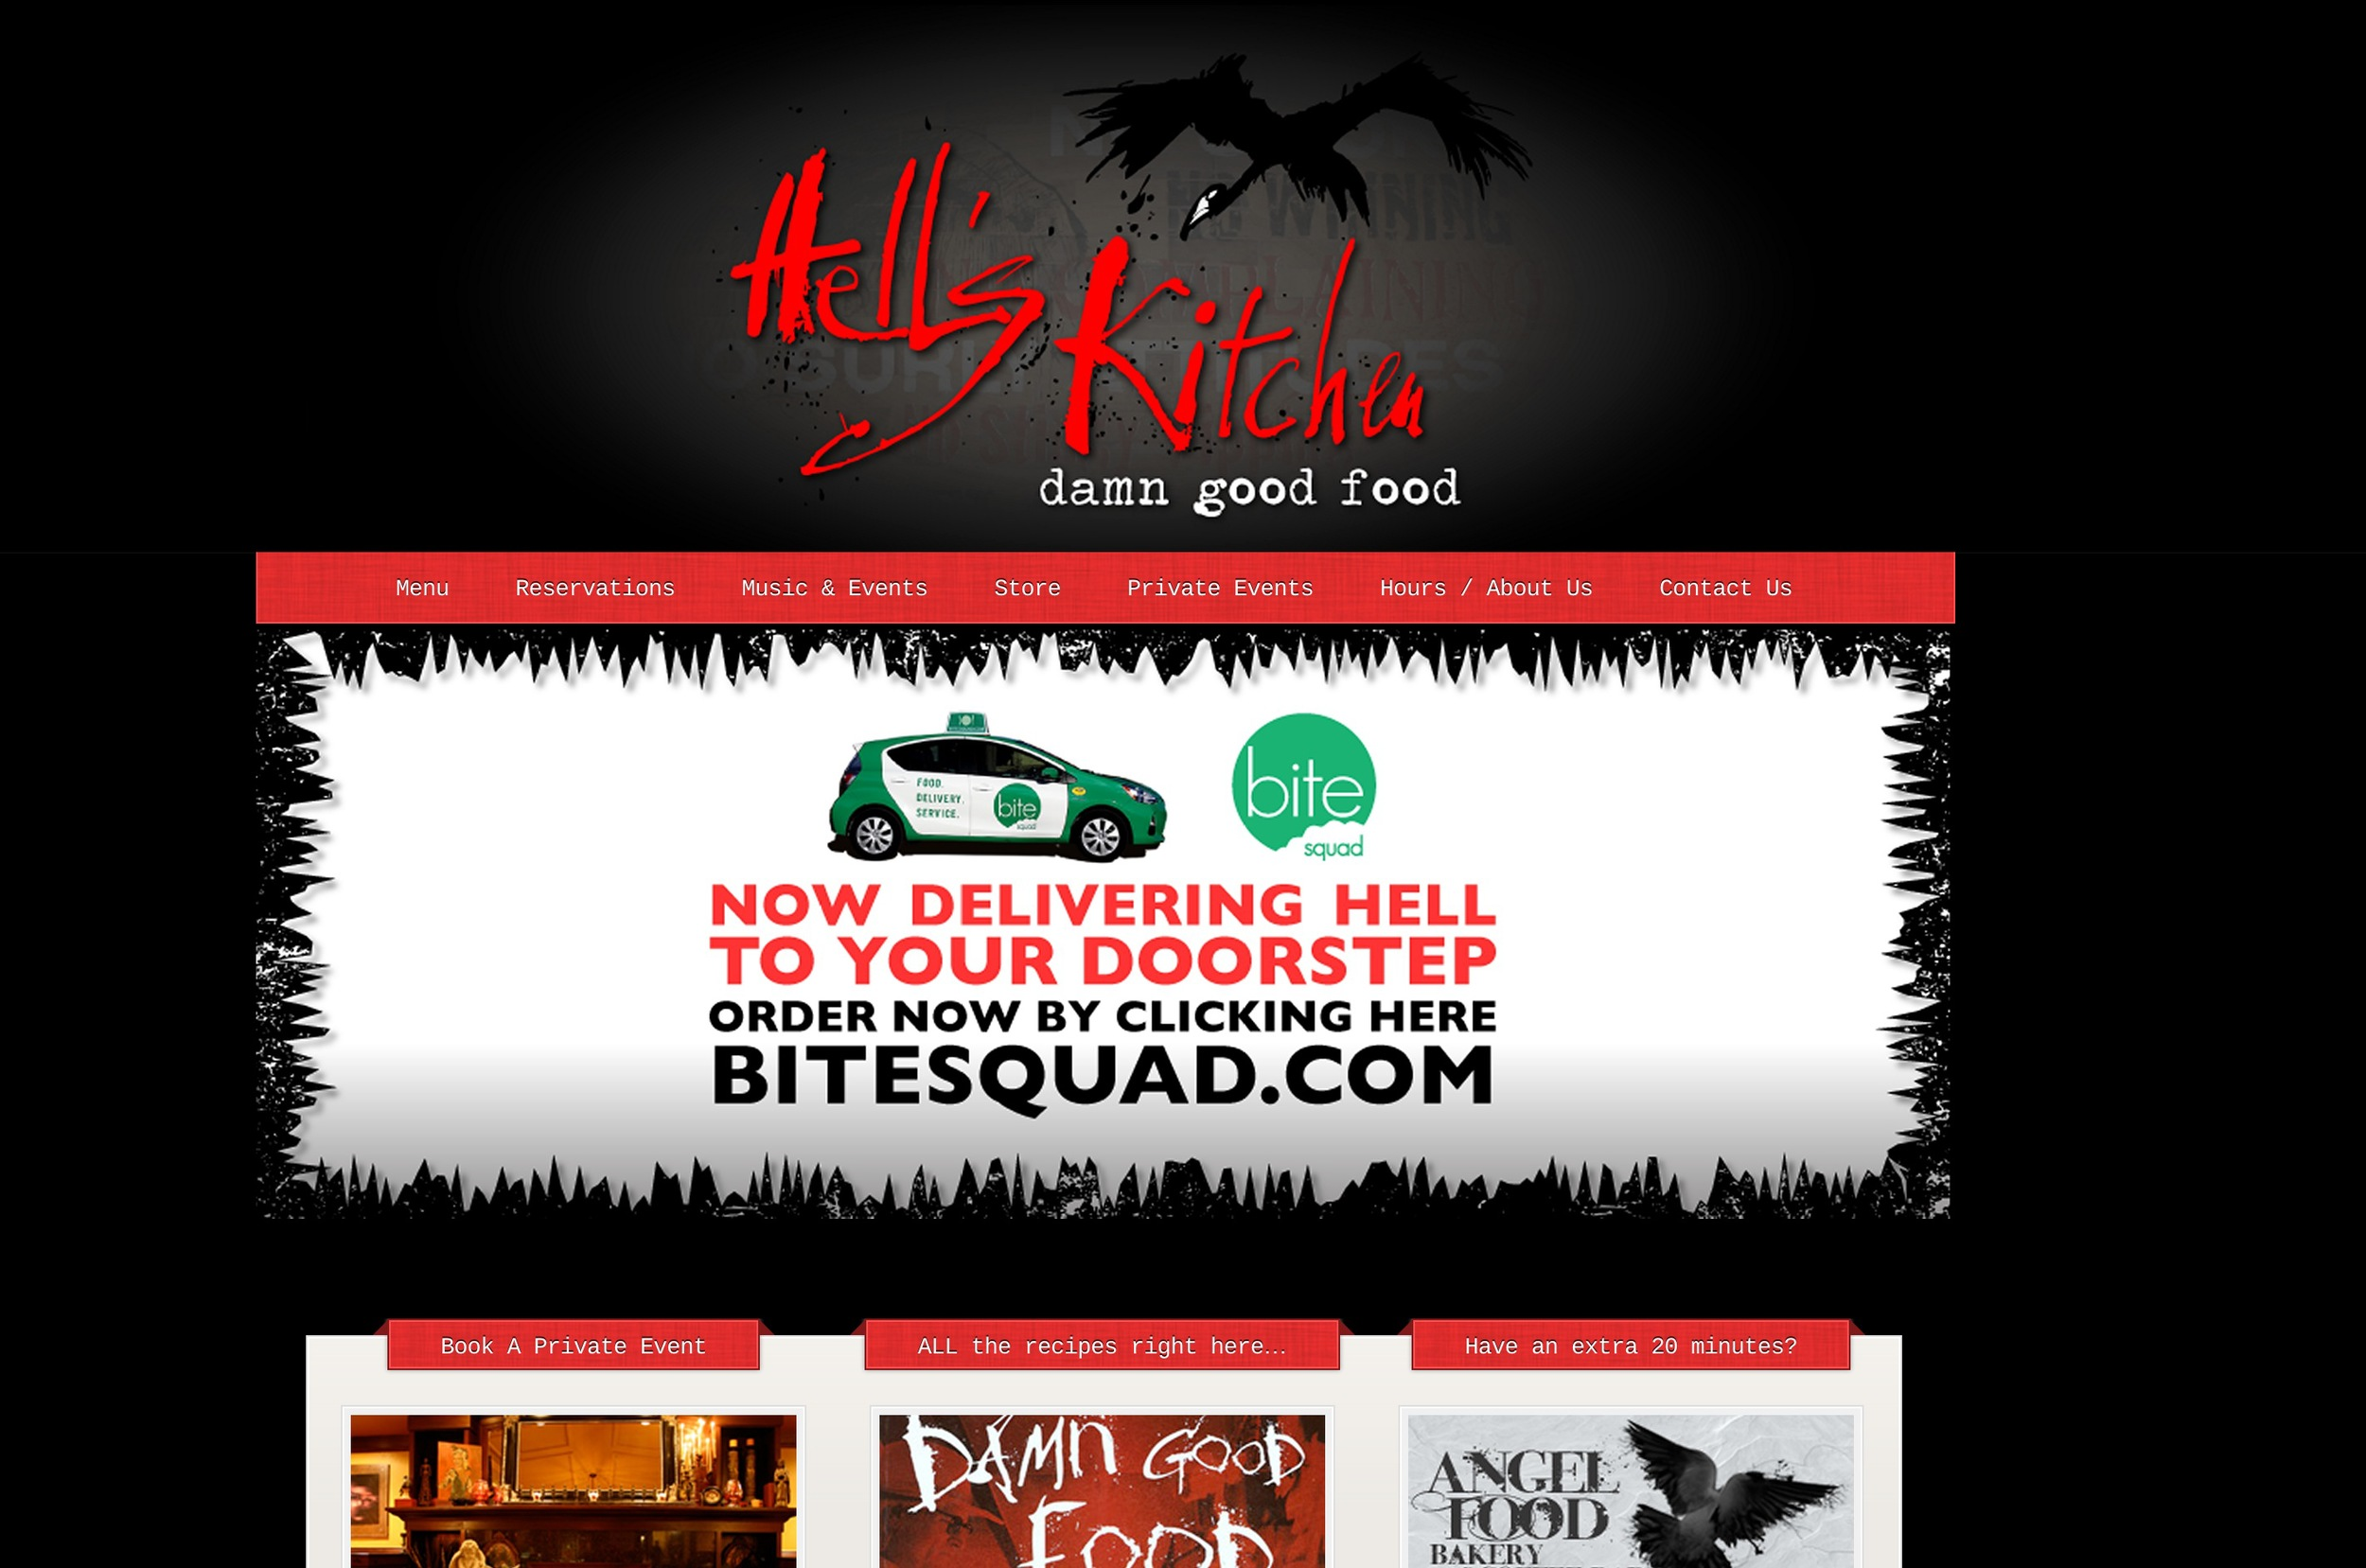 An example of a restaurant partner working with Bite Squad to promote their new delivery option online.